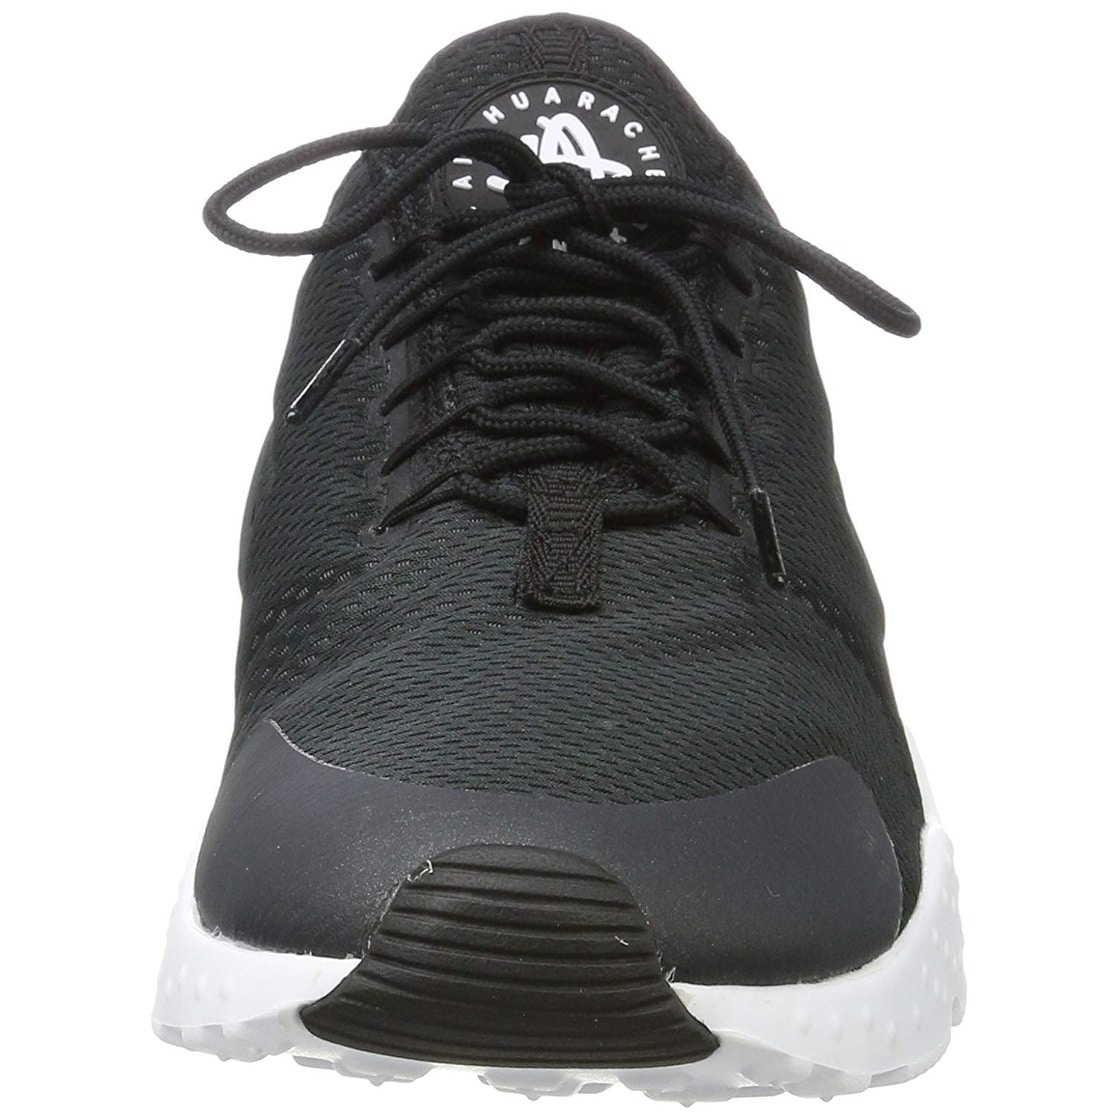 02a5115f0506c Shop Nike Womens Air Huarache Run Ultra Low Top Lace Up Running Sneaker -  Free Shipping Today - Overstock - 25753644